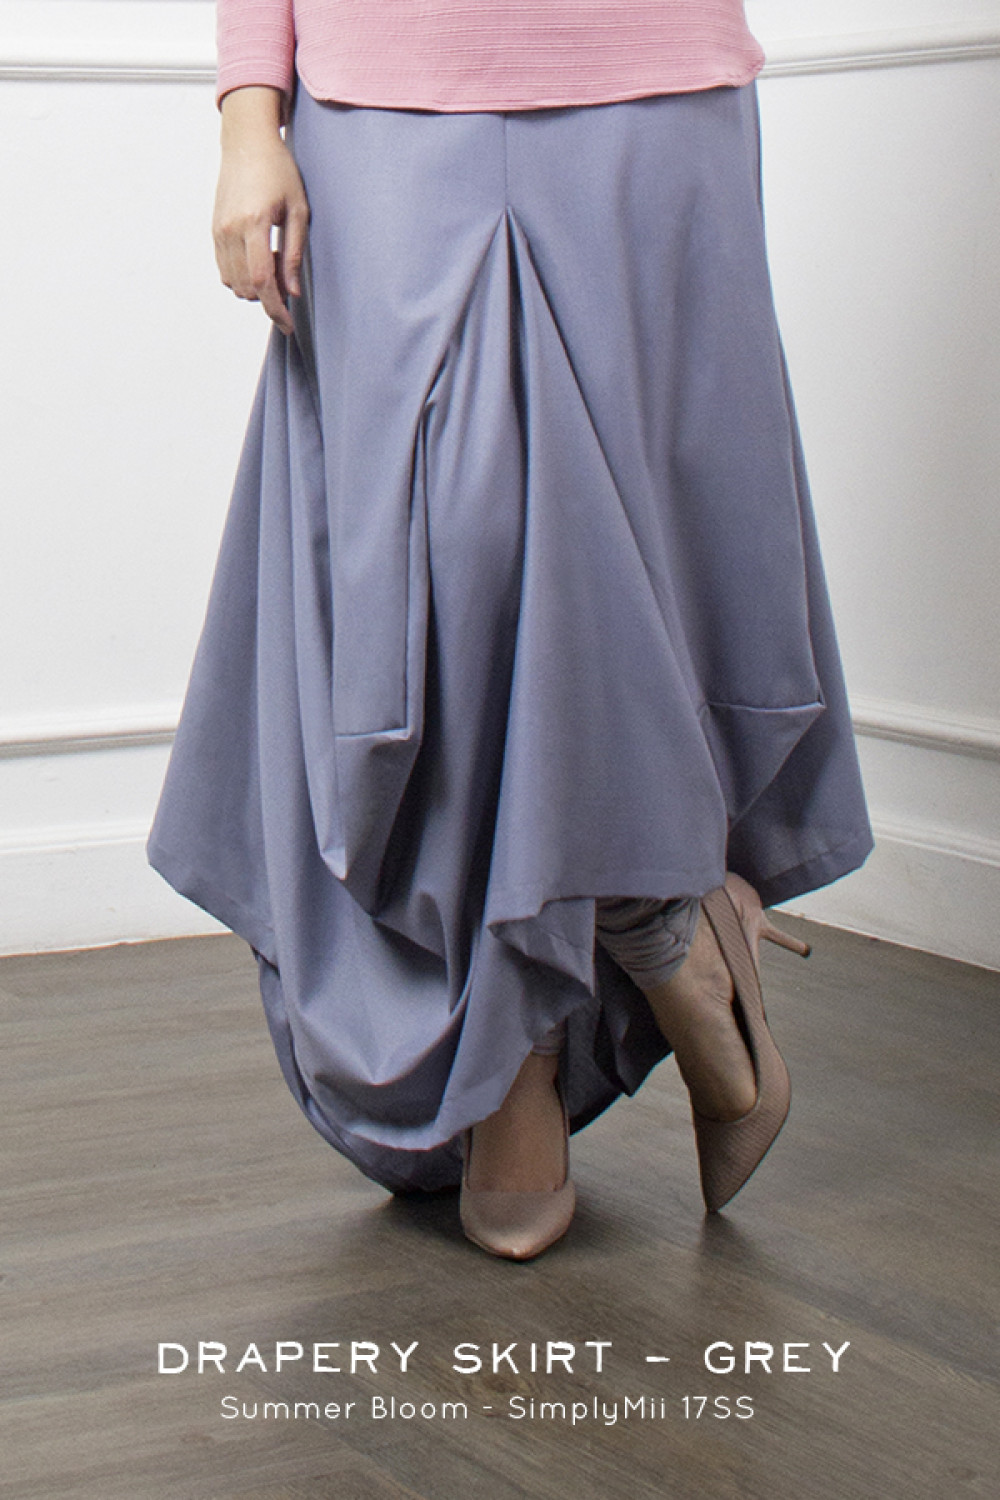 DRAPERY SKIRT GREY 1